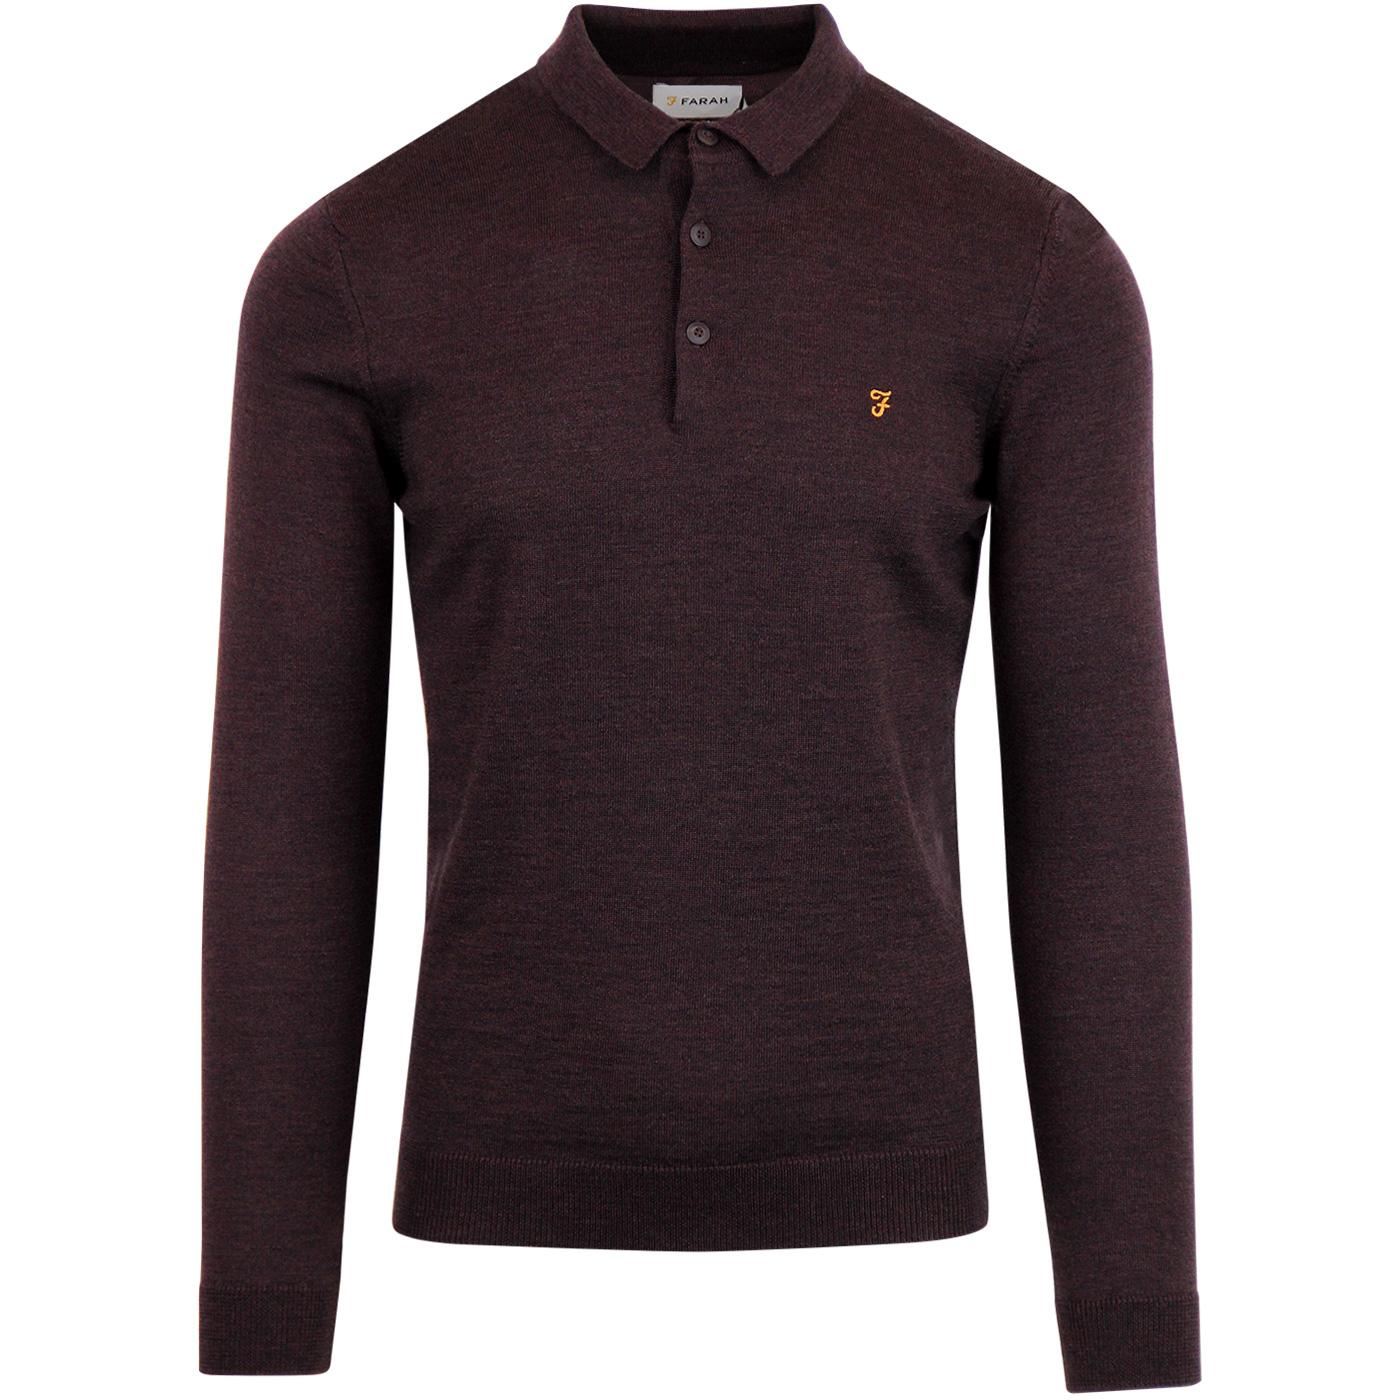 Maidwell FARAH 60's Mod Knitted Wool Polo BORDEAUX